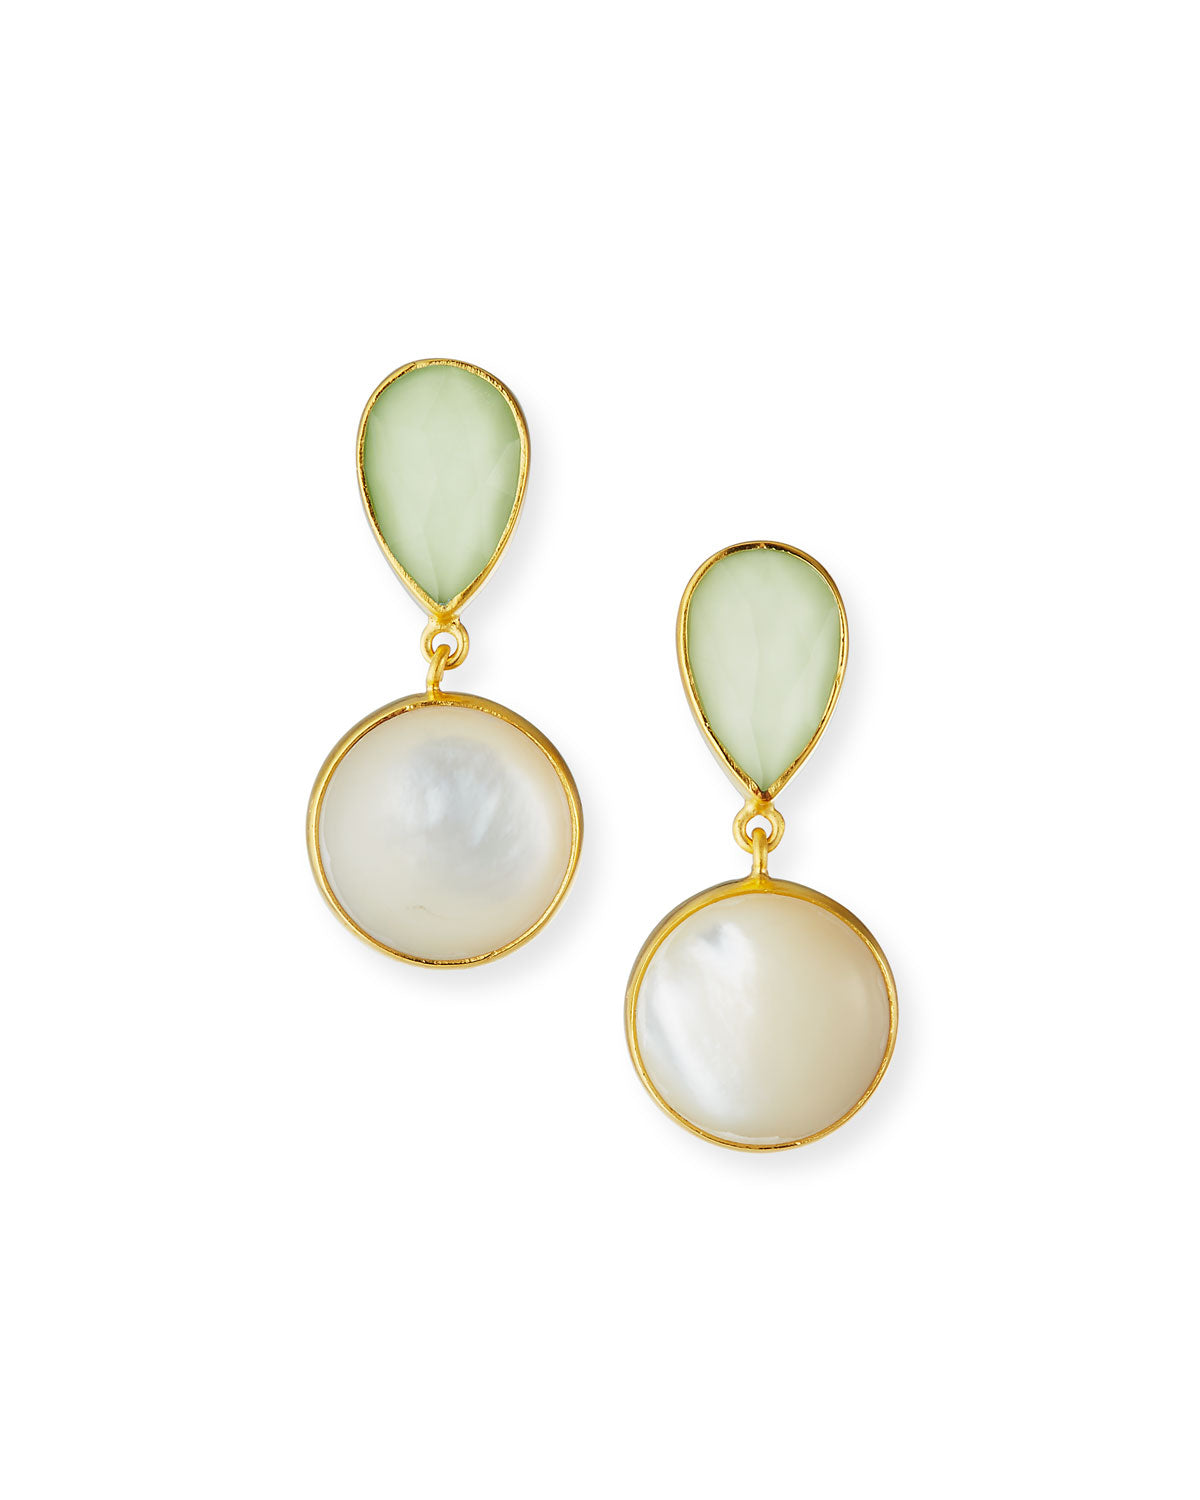 Lemon Chrysoprase and Mother of Pearl